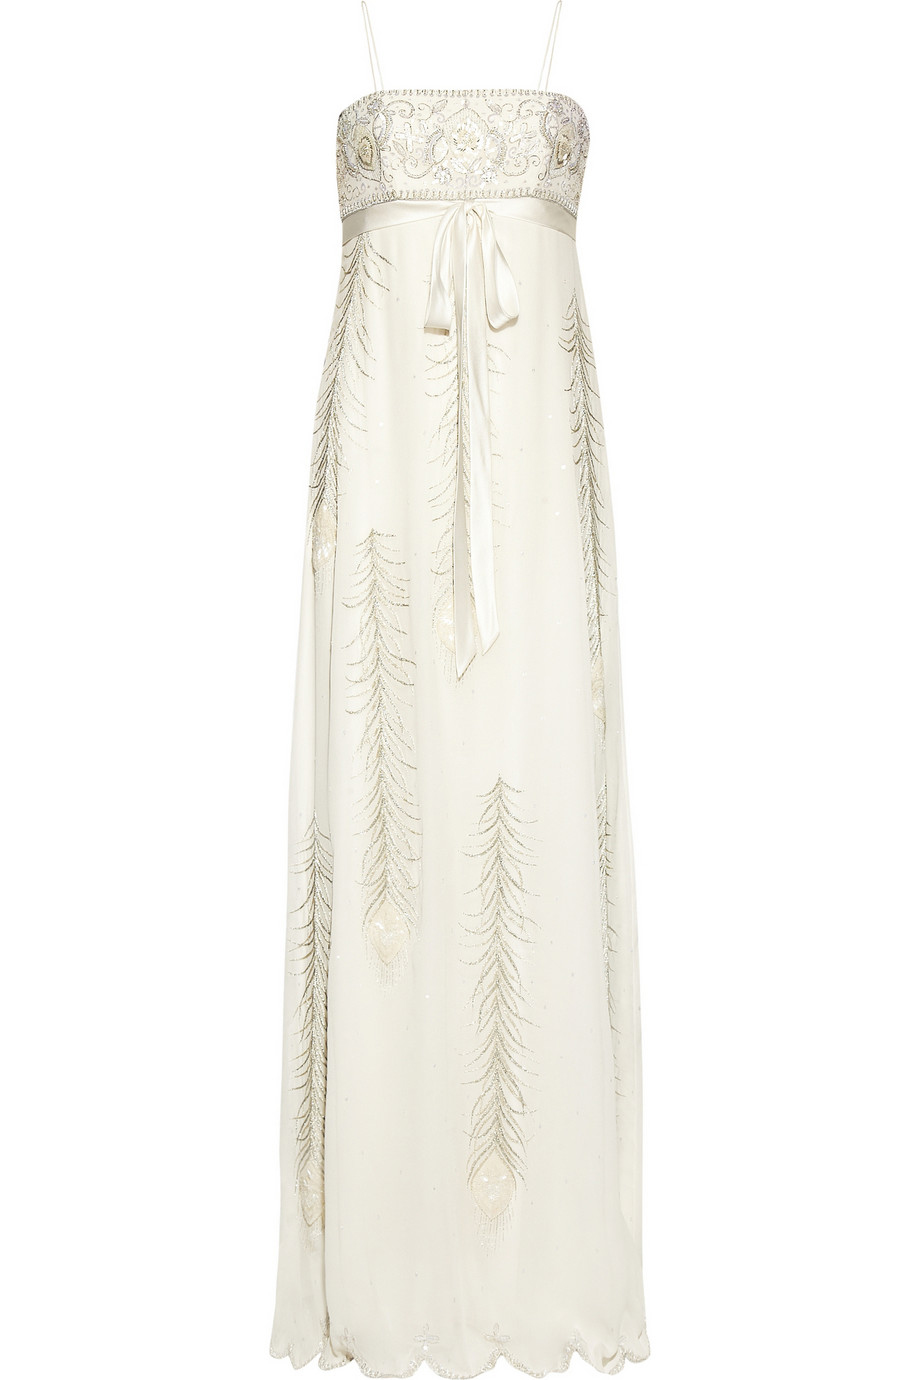 MATTHEW WILLIAMSON Embellished silk-chiffon gown- £3,500